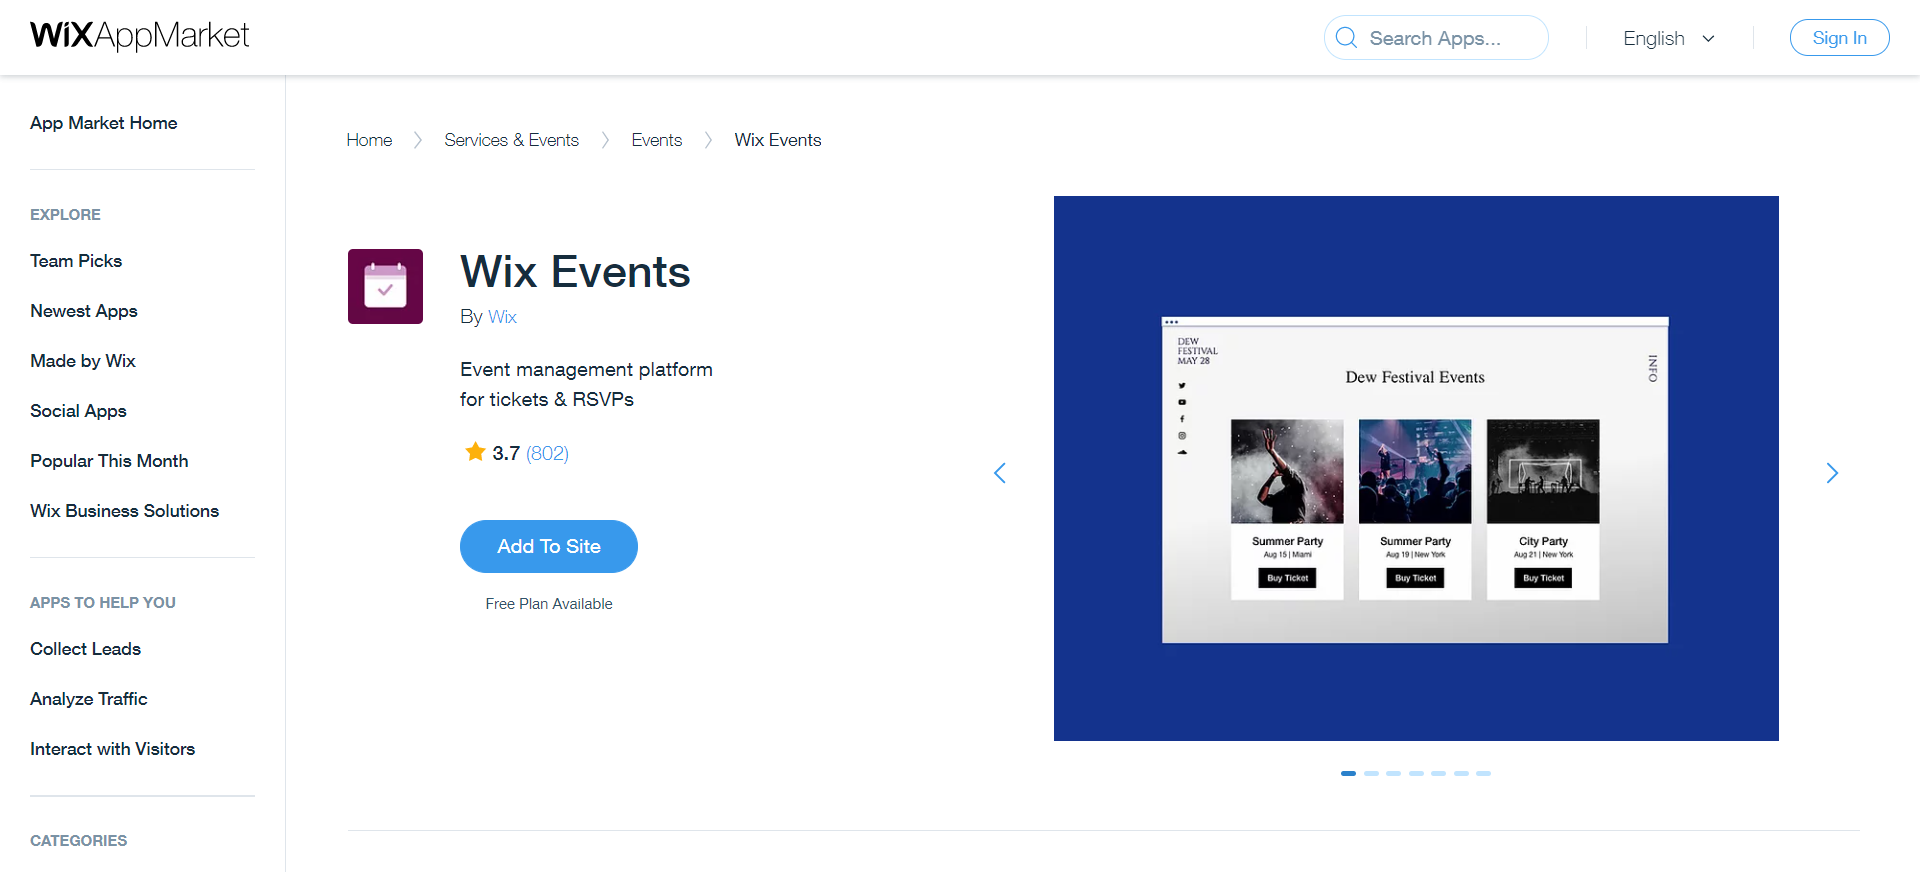 Wix Events: Wix App